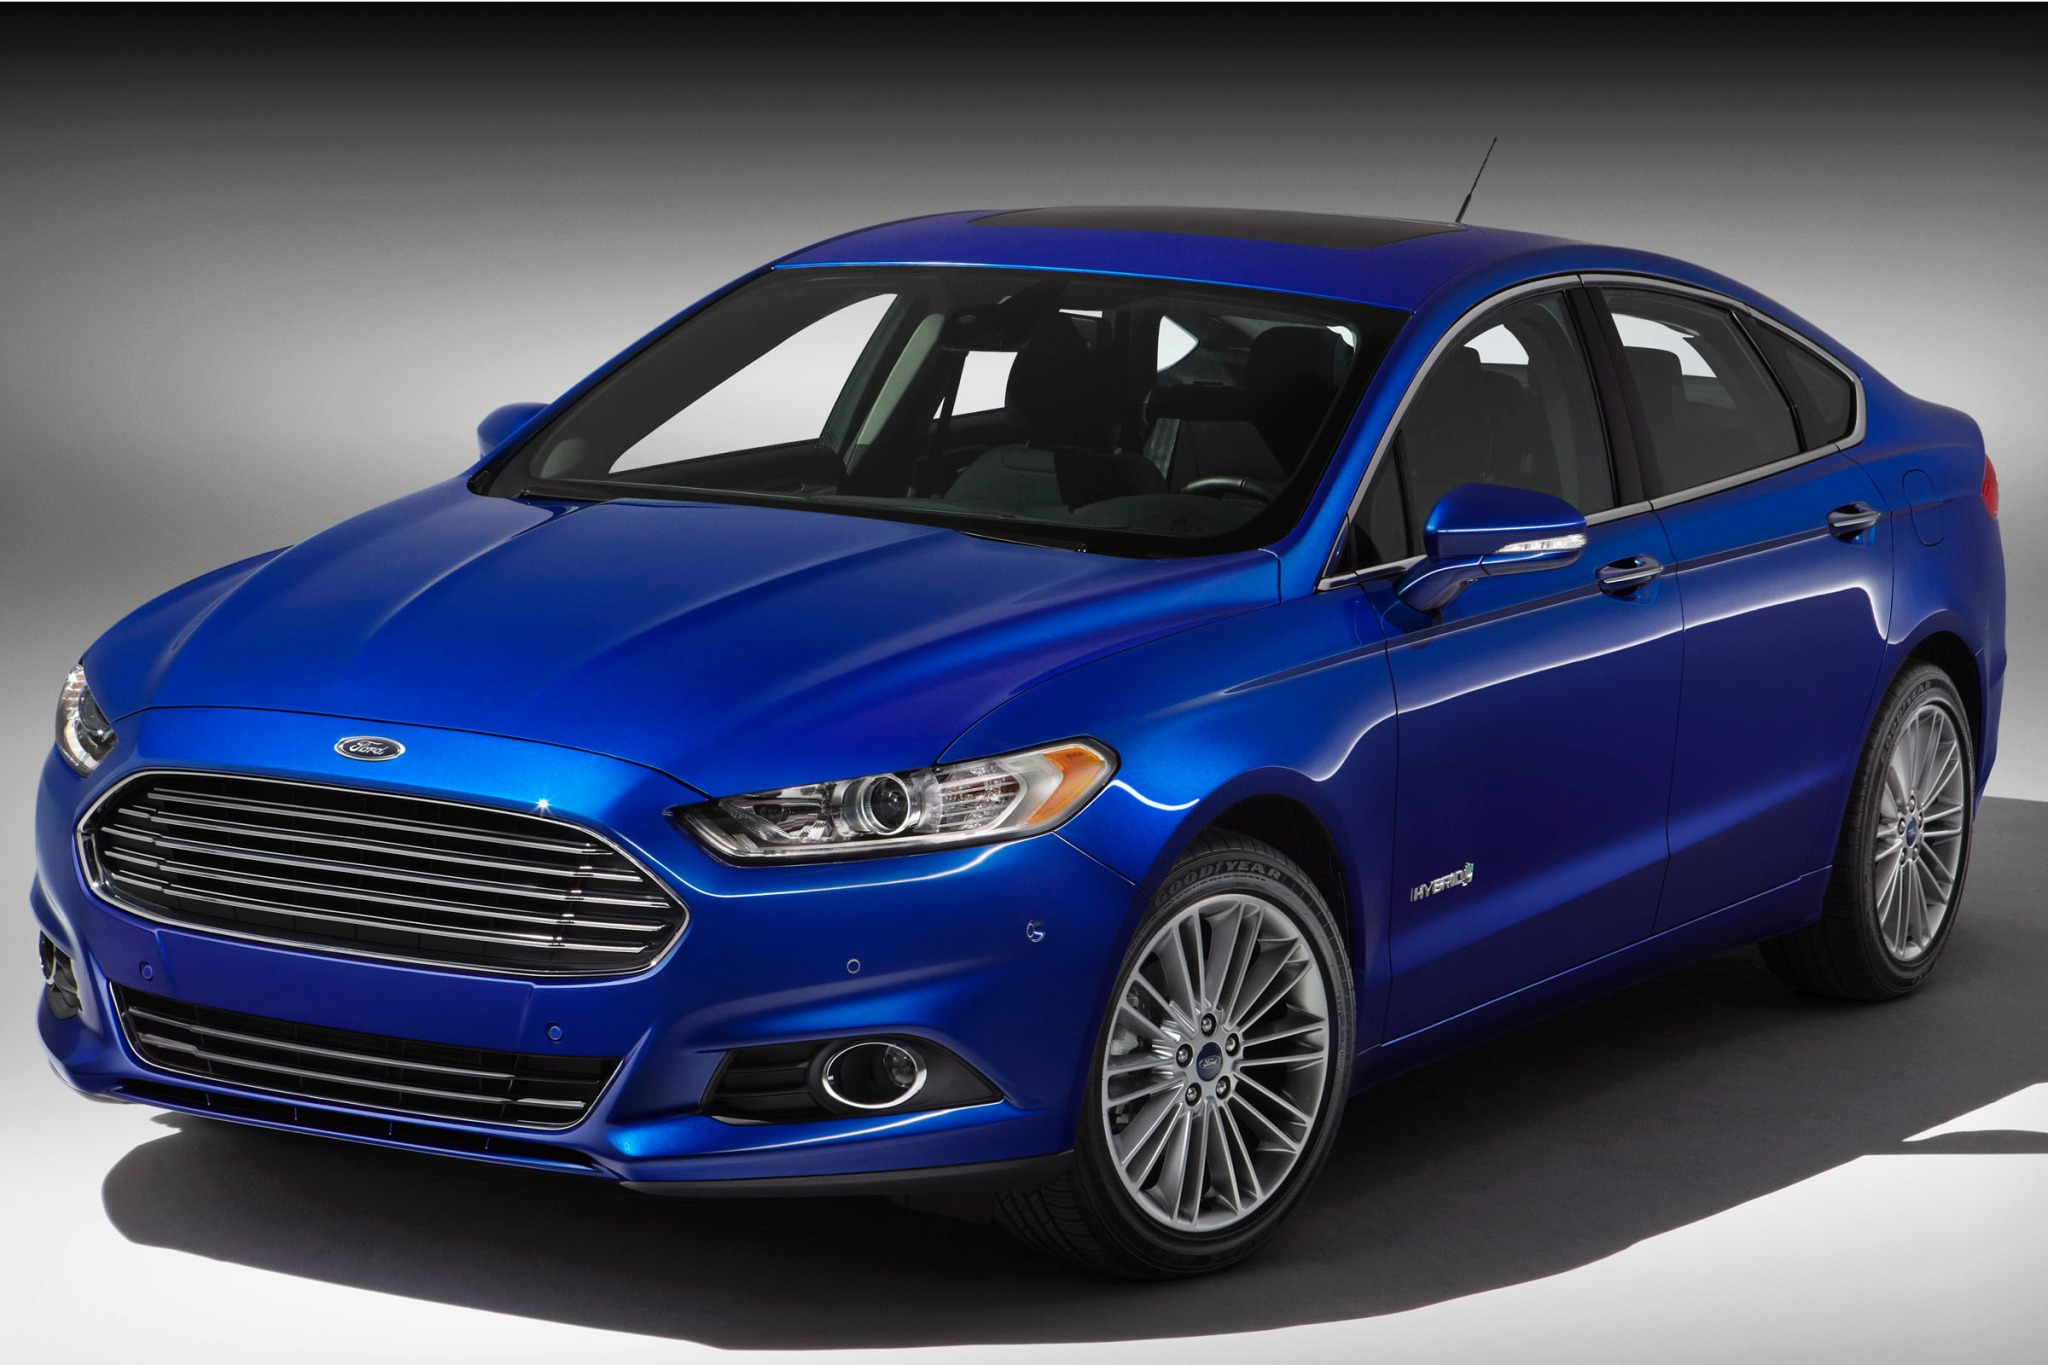 2013 Ford Fusion Hybrid S interior #1